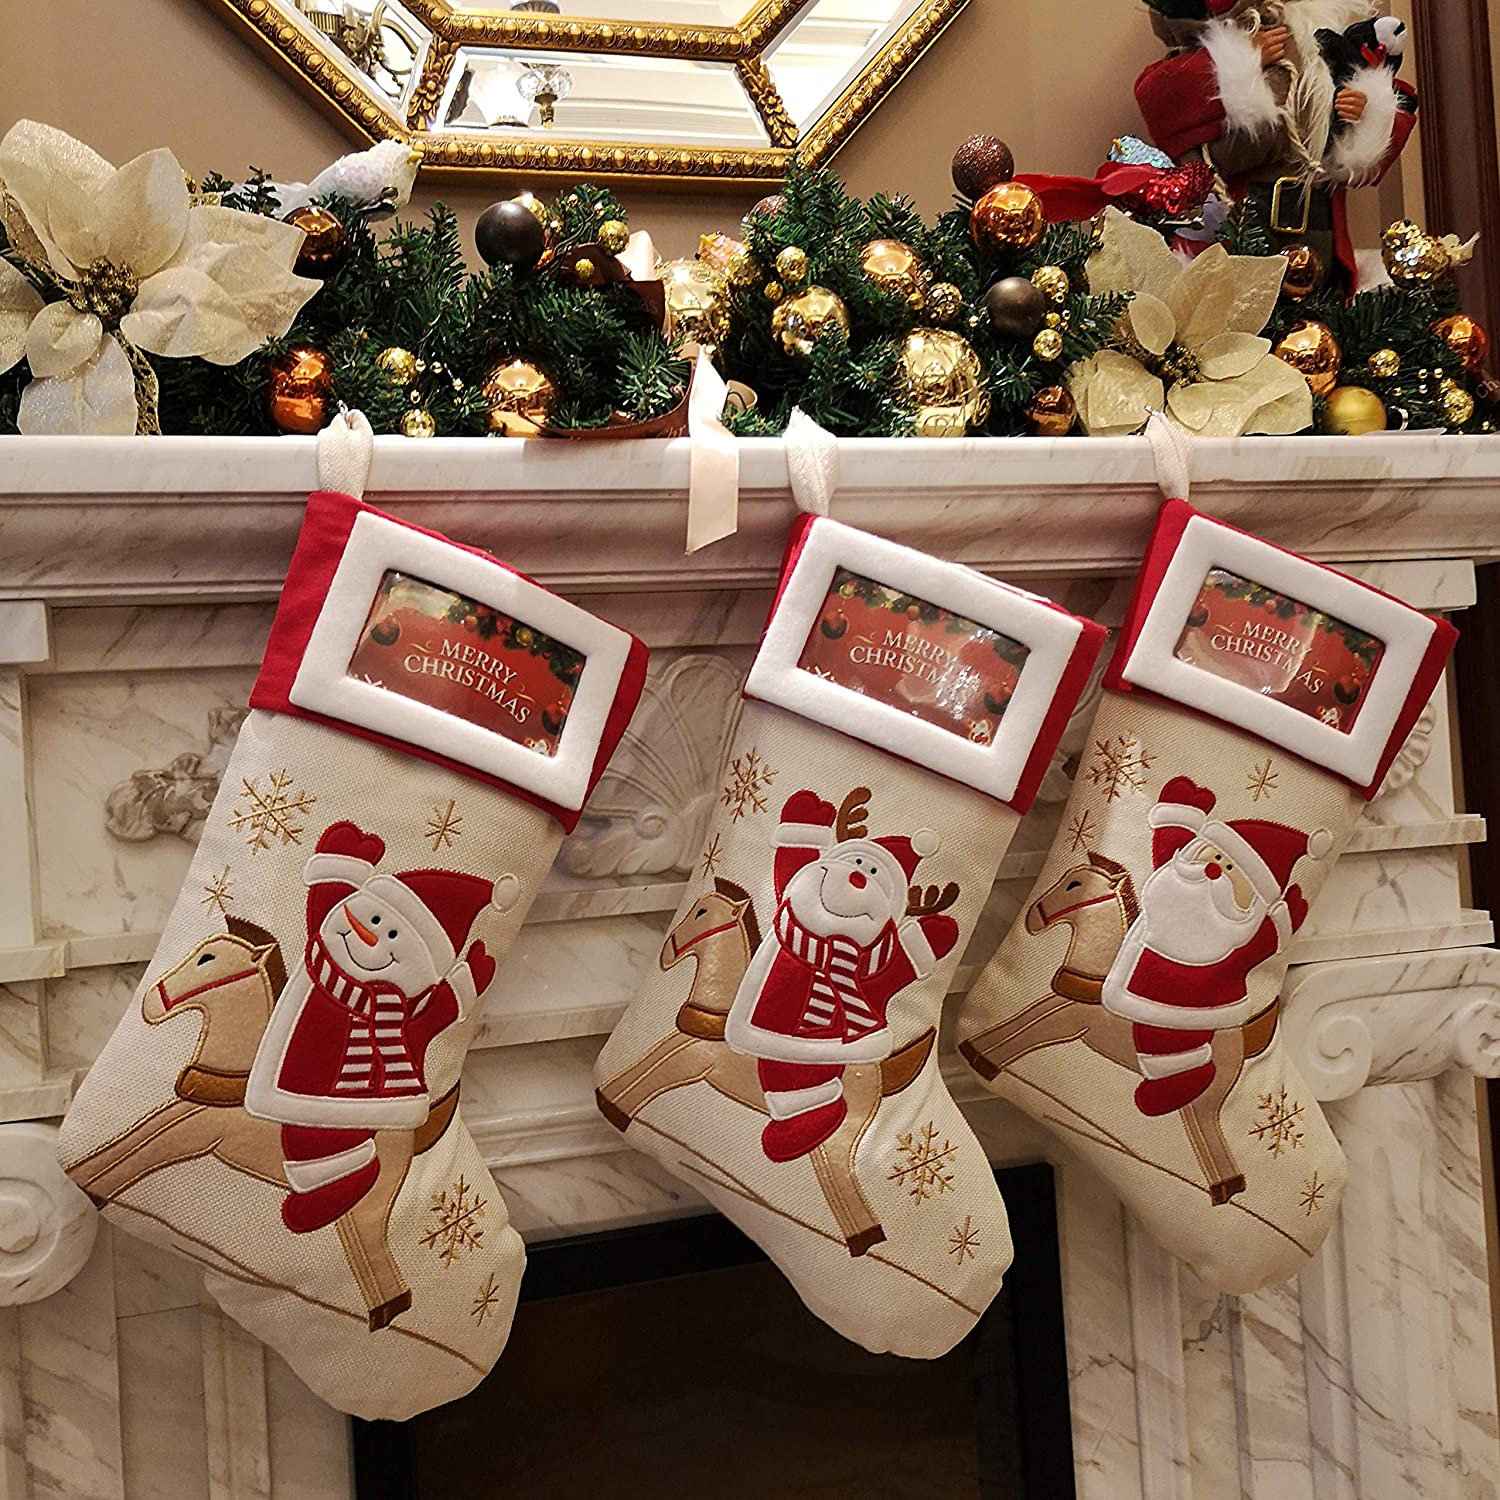 Reindeer 1 Bstaofy Lovely Christmas Stockings Set of 3 Santa Snowman Xmas Character 3D Plush Linen Hanging Tag Knit Border